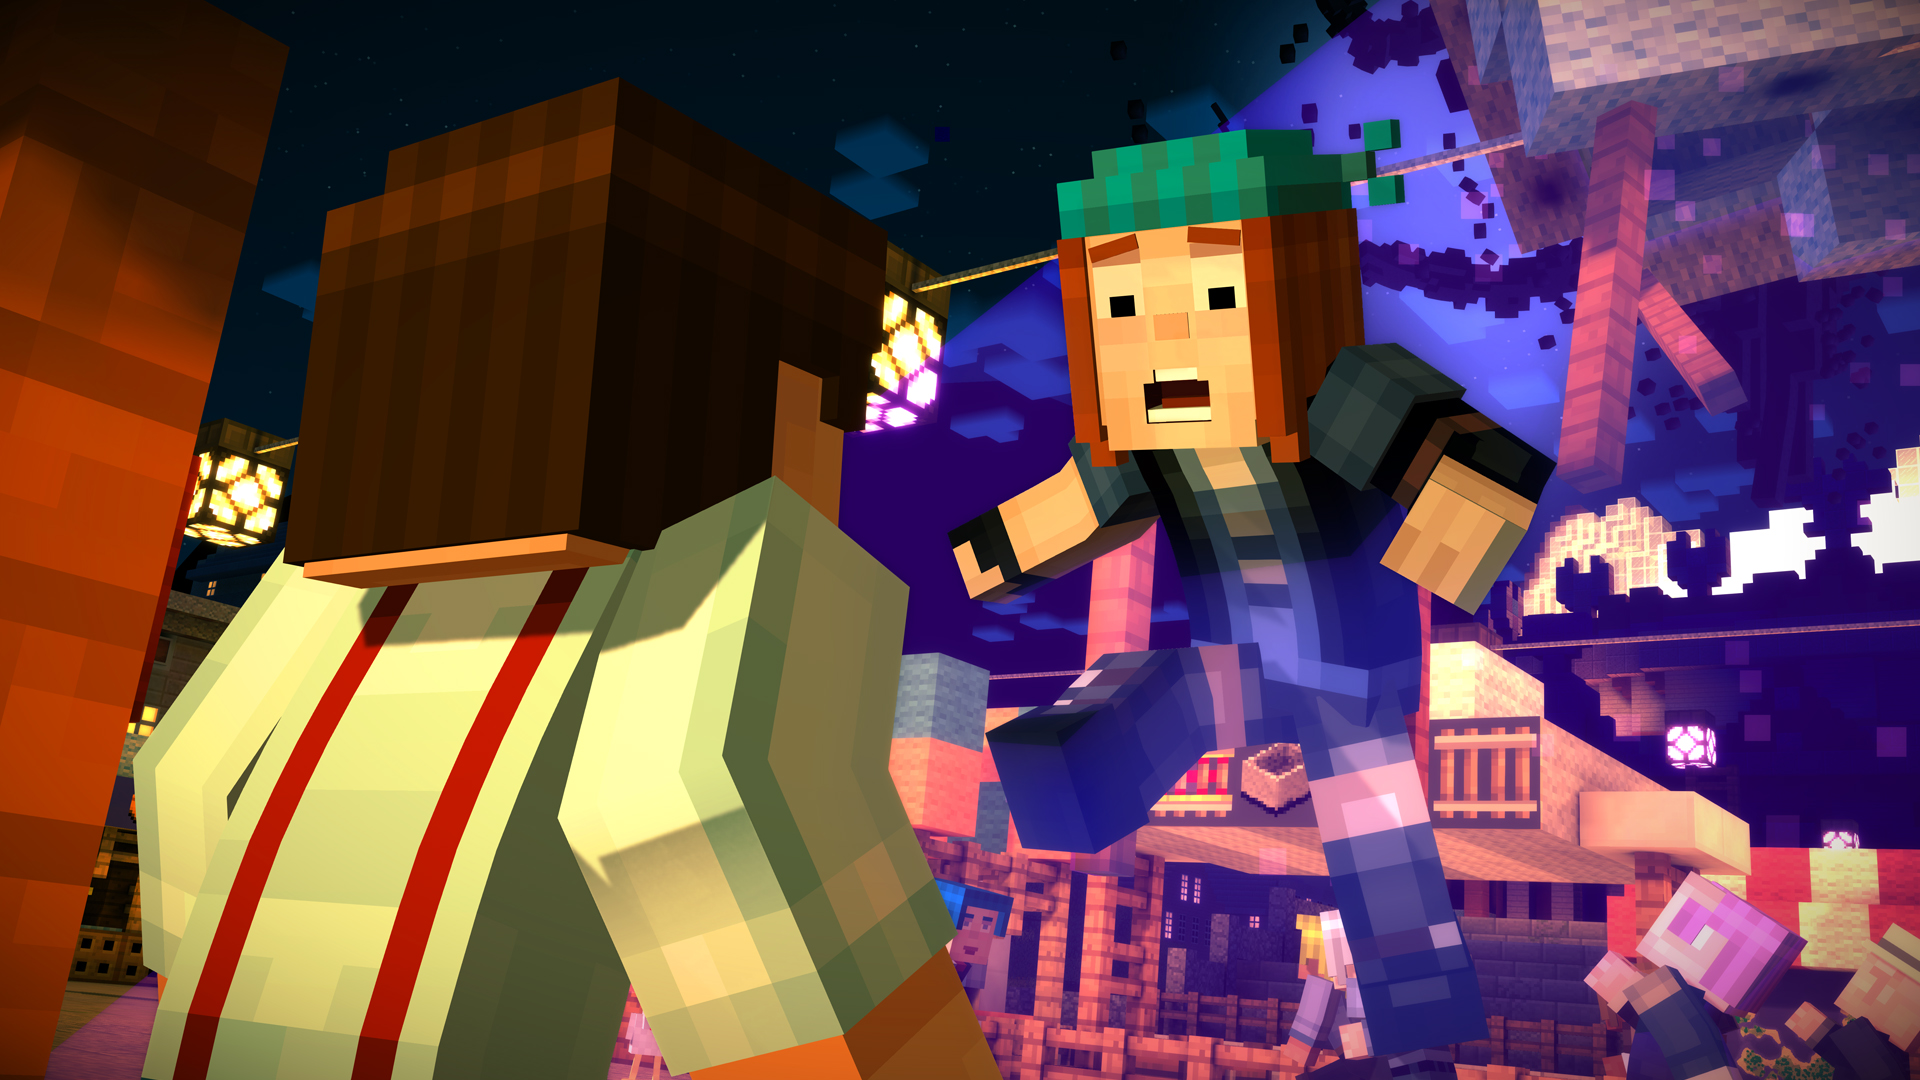 Minecraft Story Mode A Telltale Games Series On Steam - Minecraft spiele kostenlos installieren